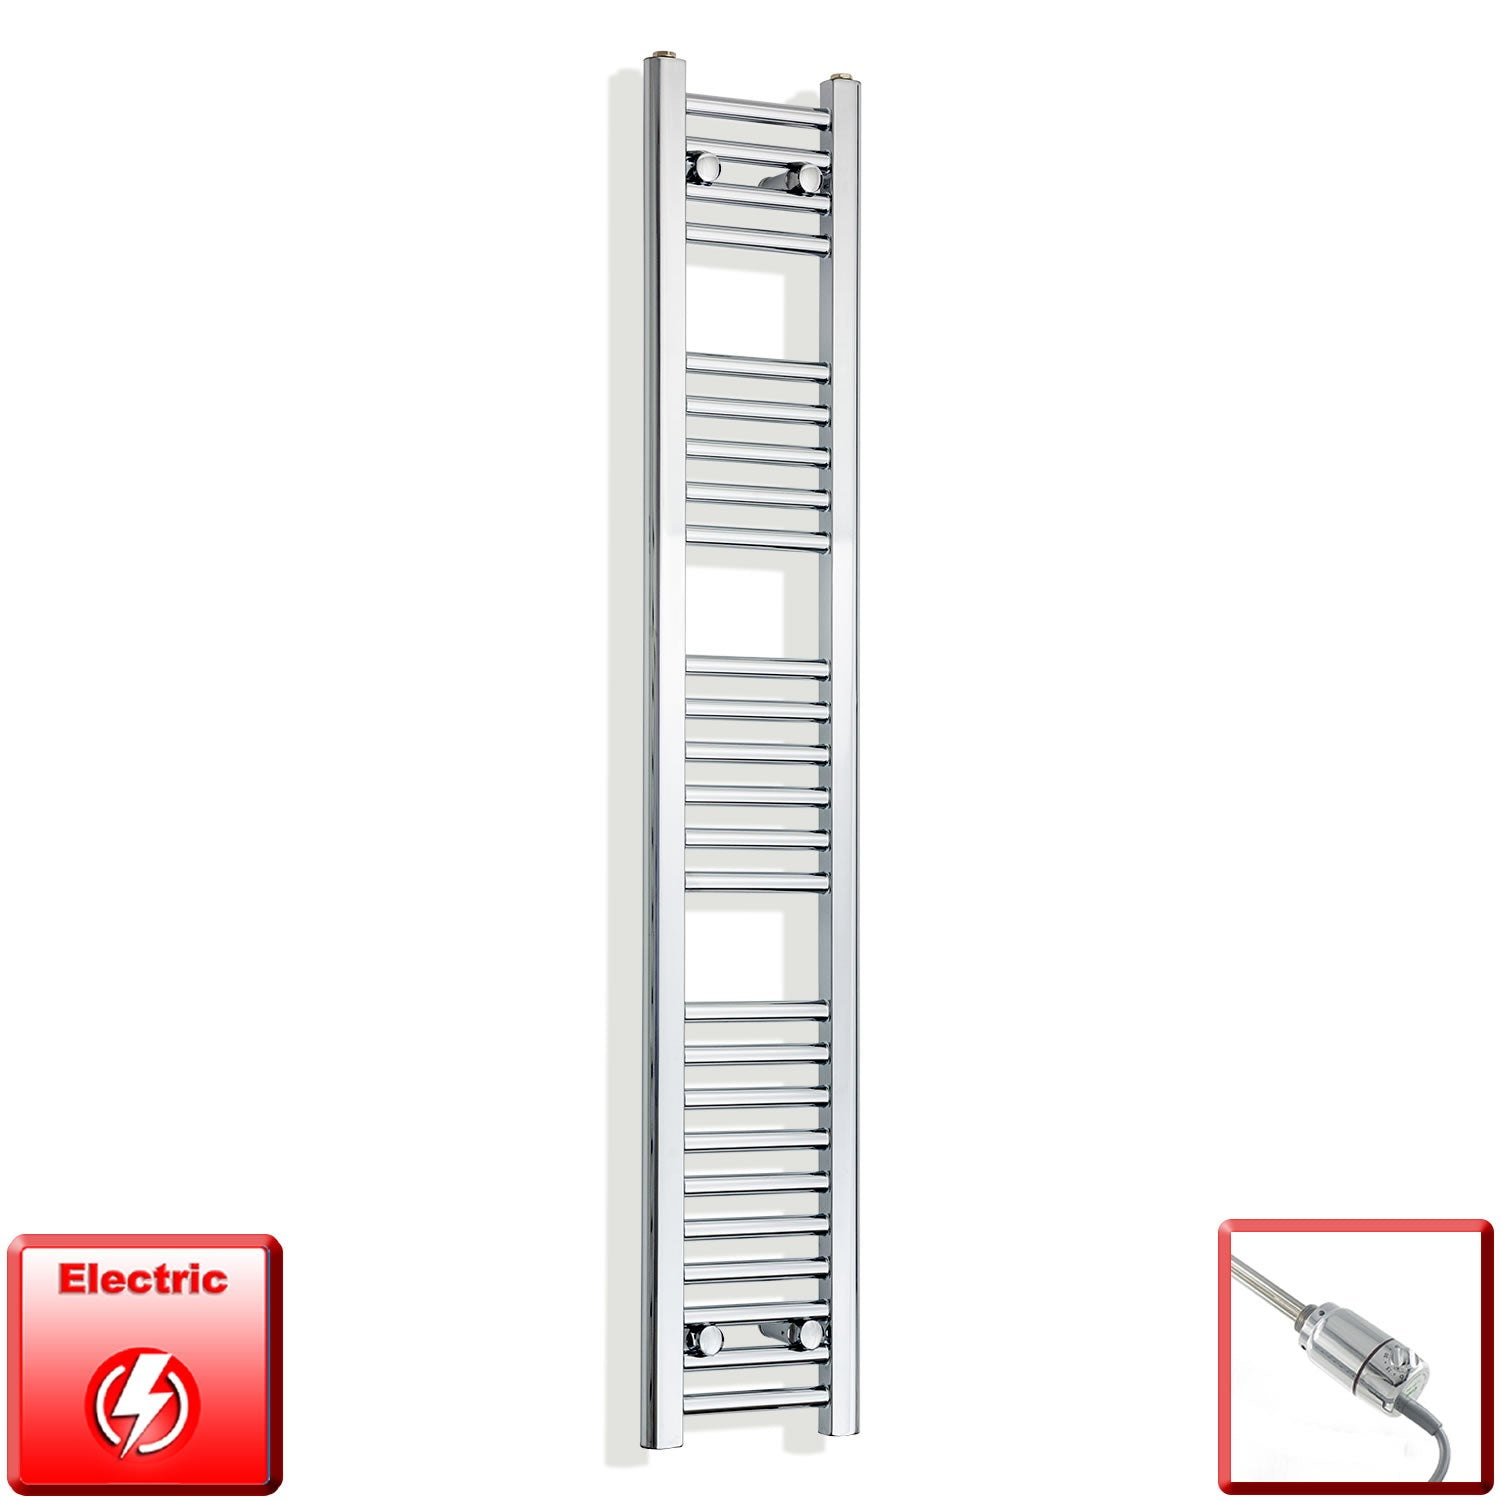 200mm Wide 1400mm High Flat Chrome Pre-Filled Electric Heated Towel Rail Radiator HTR,GT Thermostatic